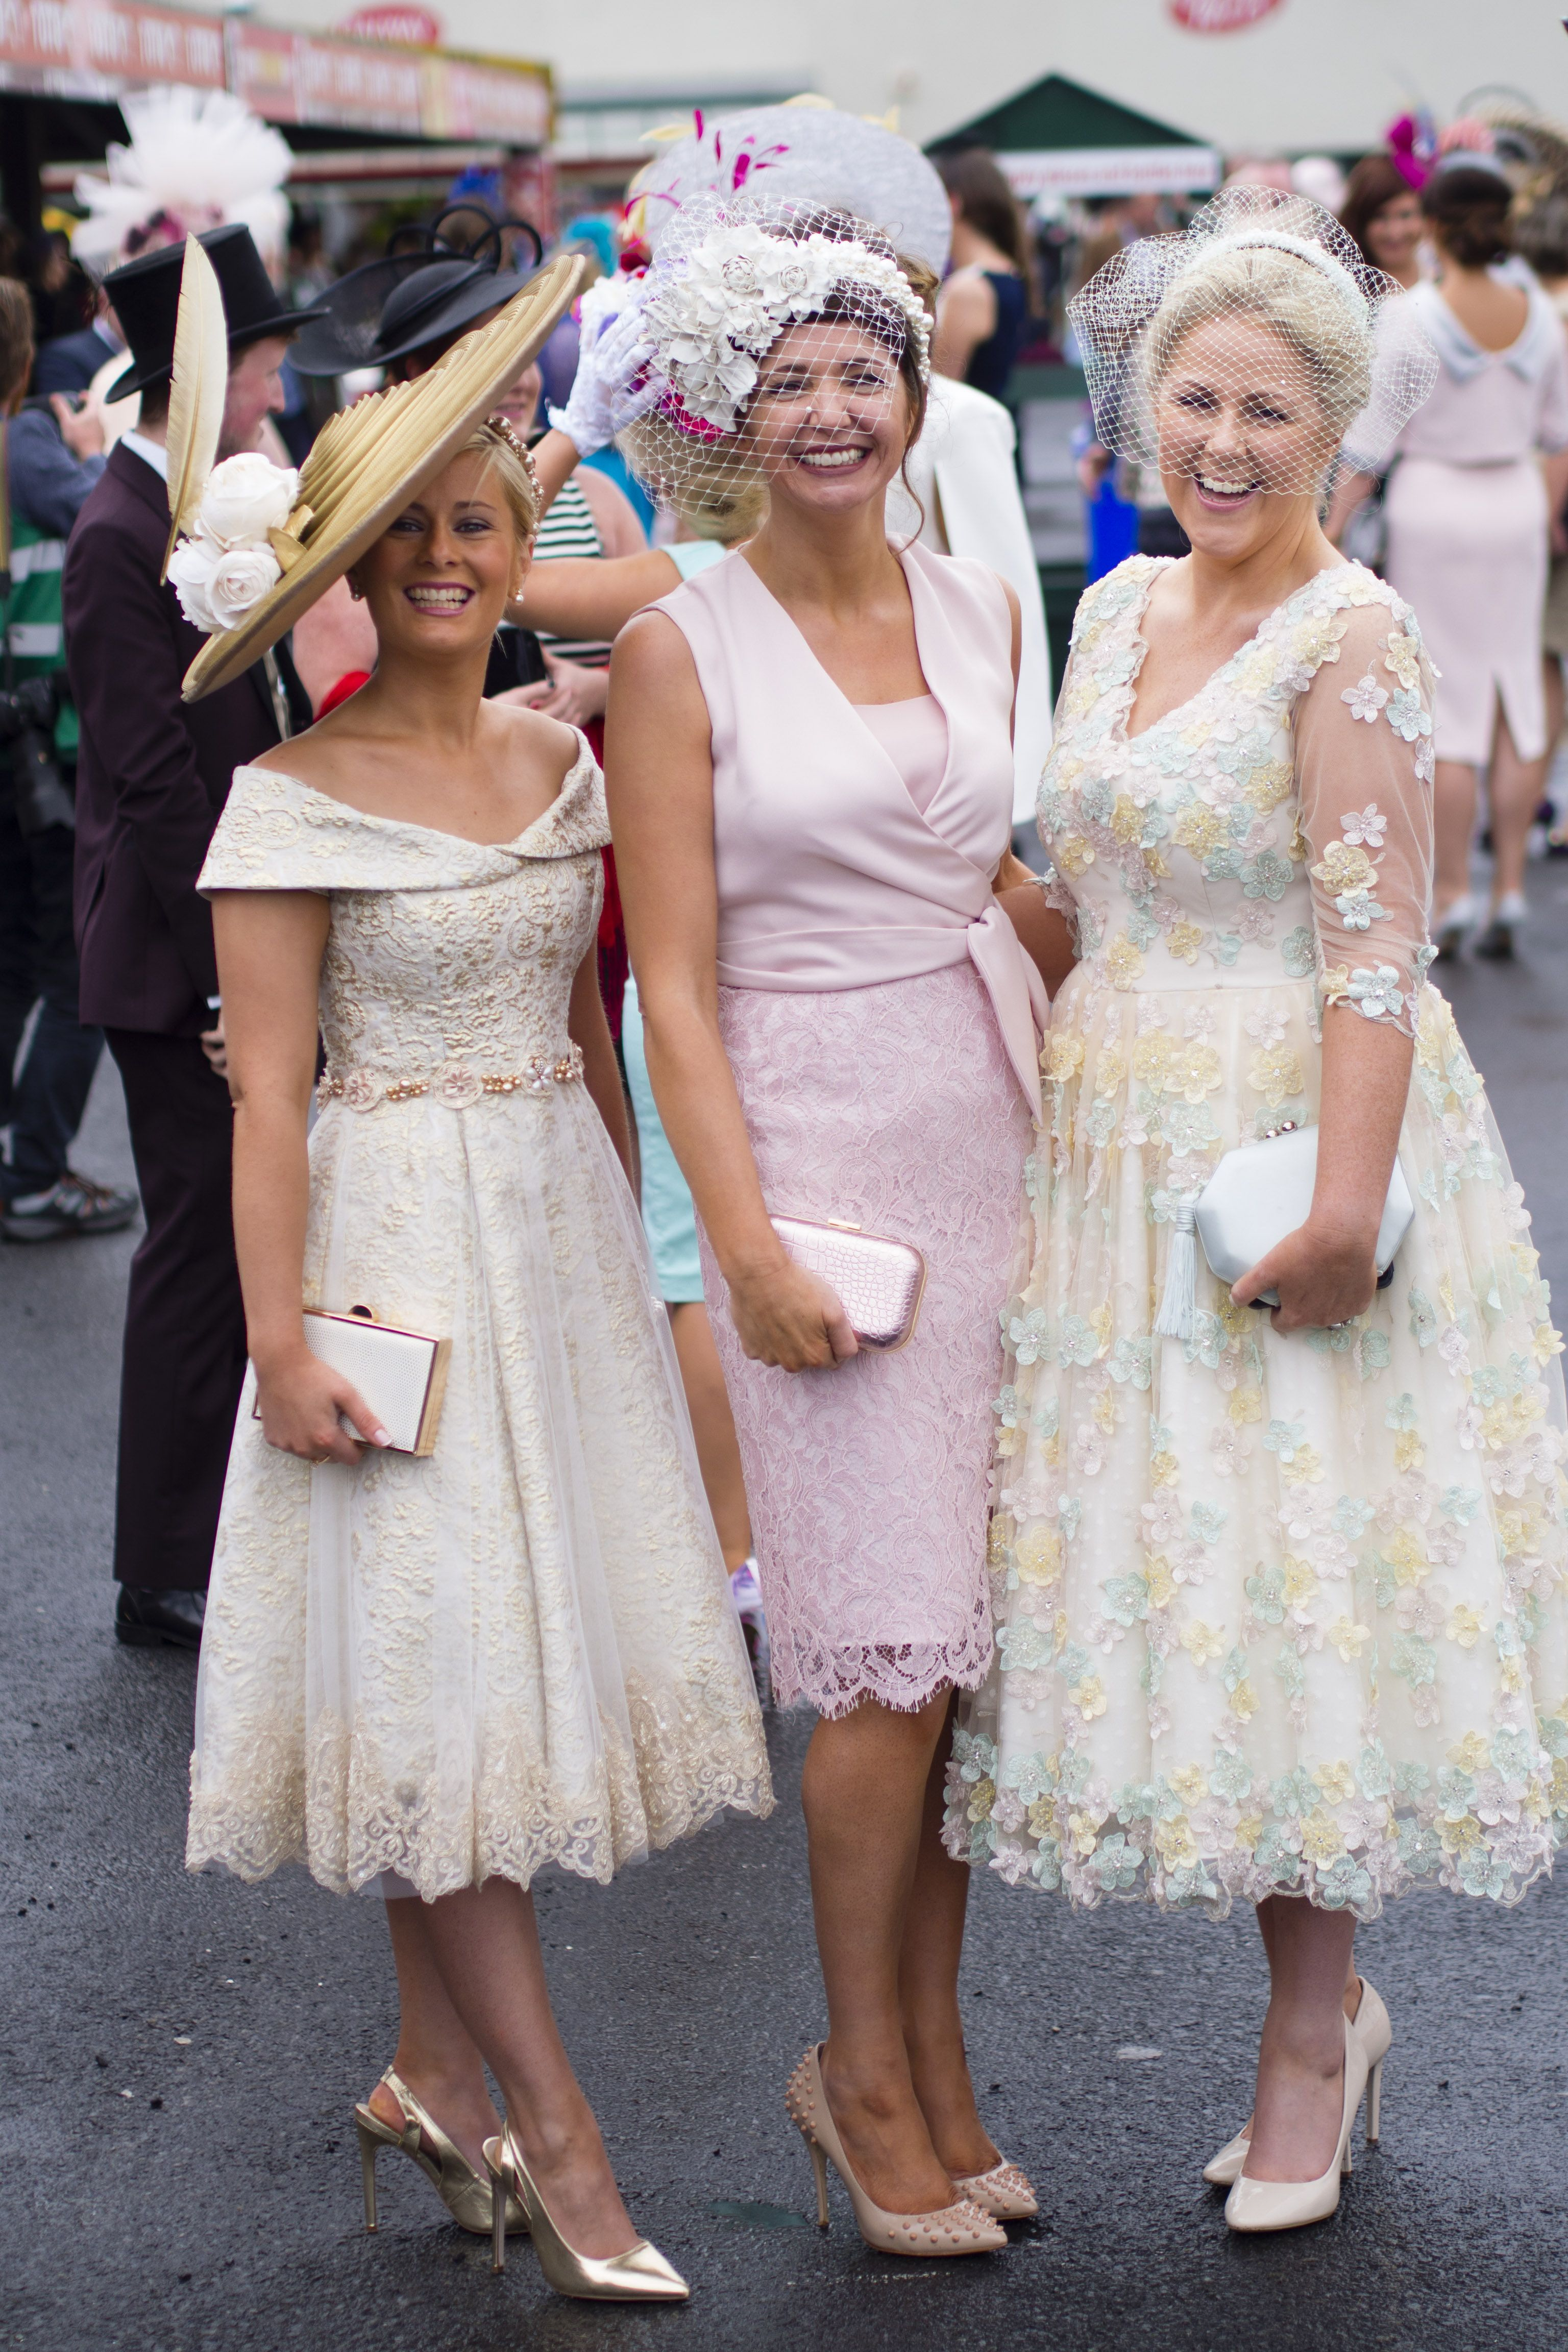 fec1e8e9f6f14 Tina Griffin Design Clients at Galway Races 2015 | Fab dresses! in ...